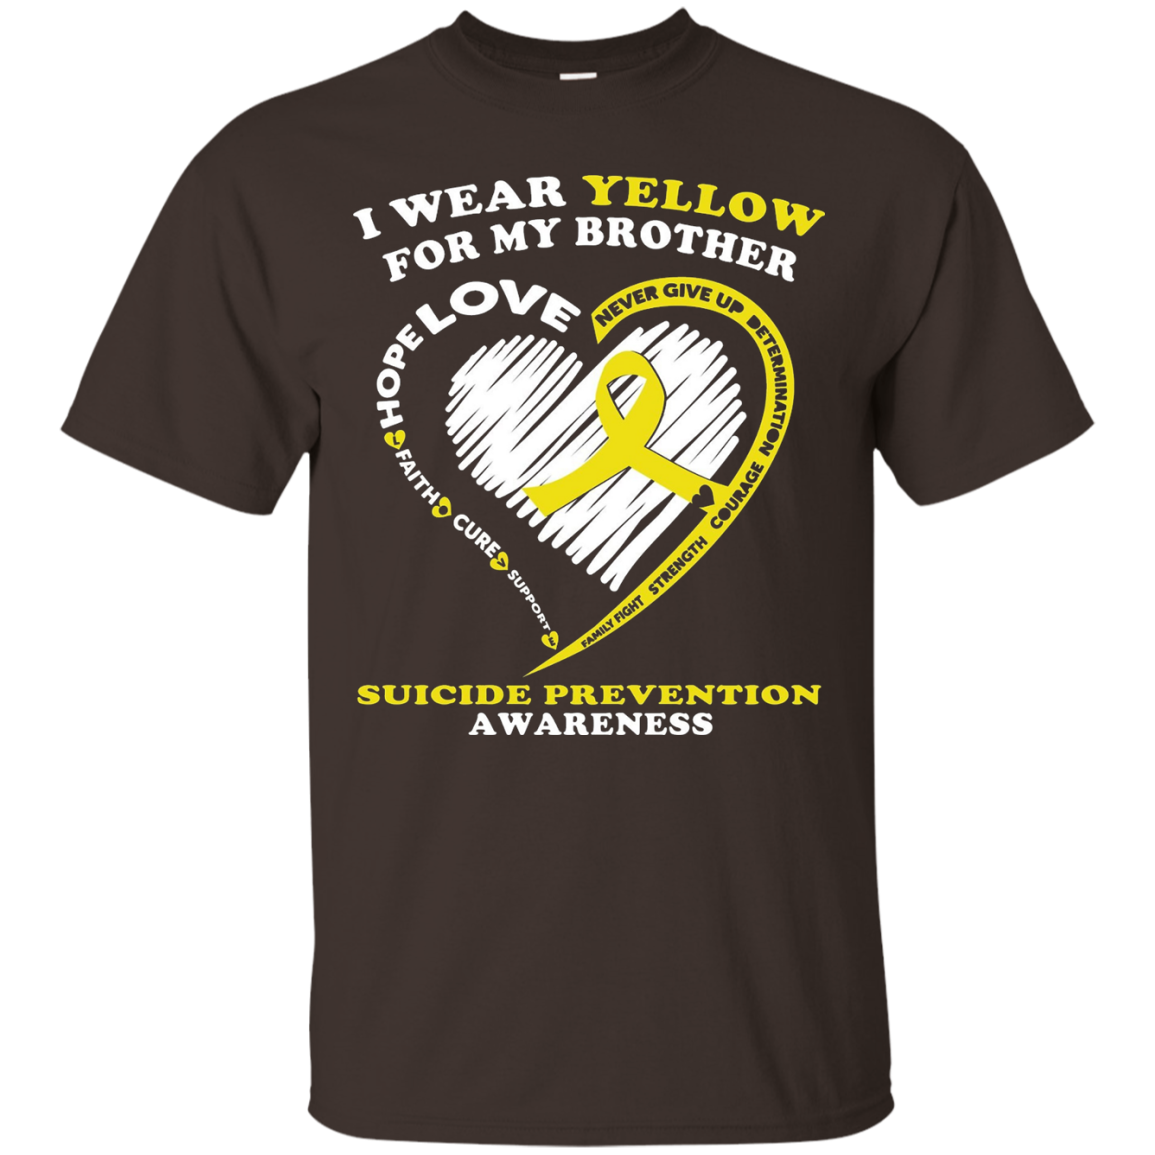 Suicide Prevention Shirt - I Wear Yellow For My Brother